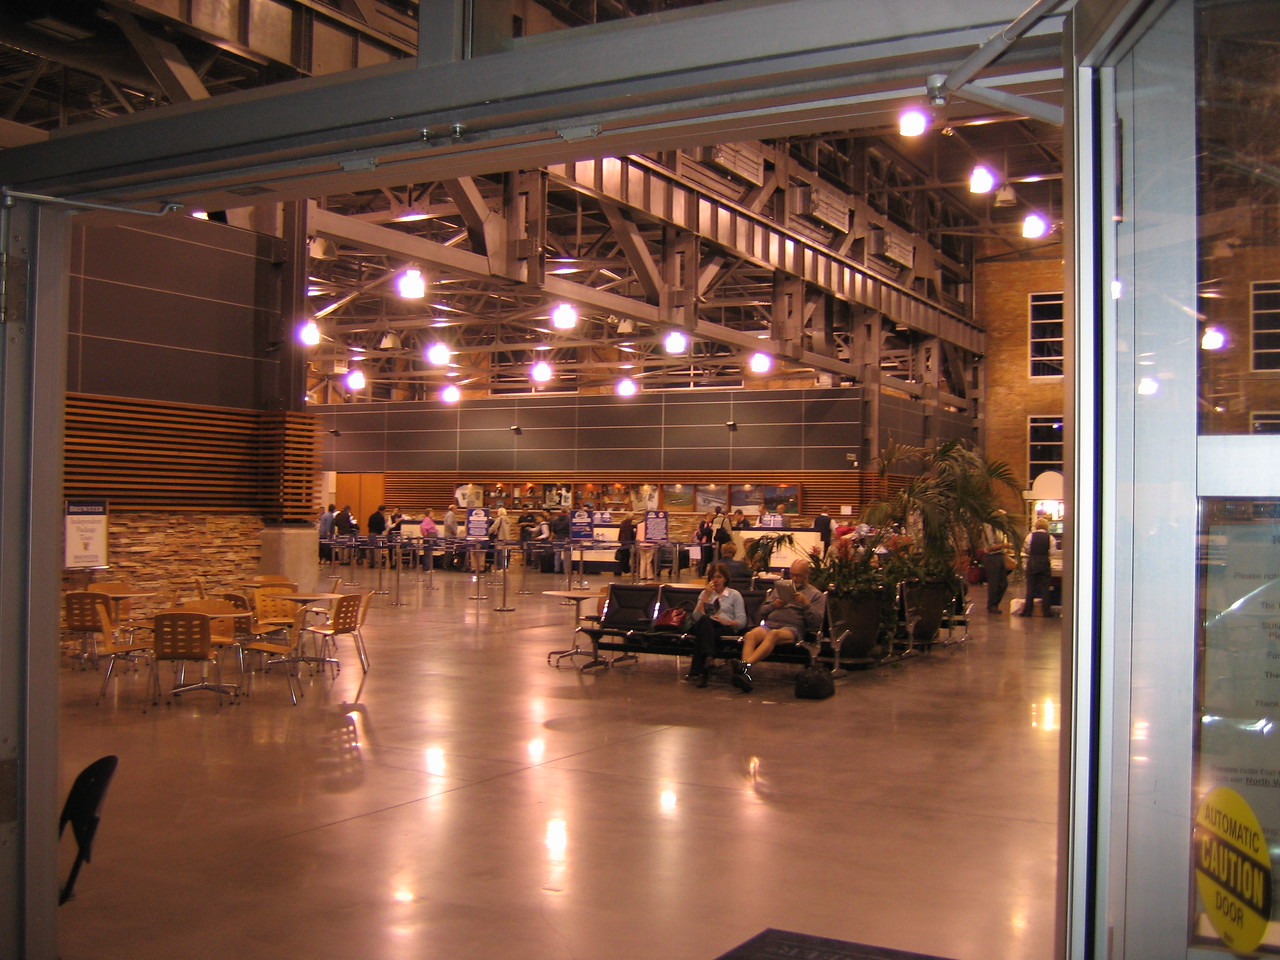 A look in the front doors. This used to be an rail car maintenance facility.